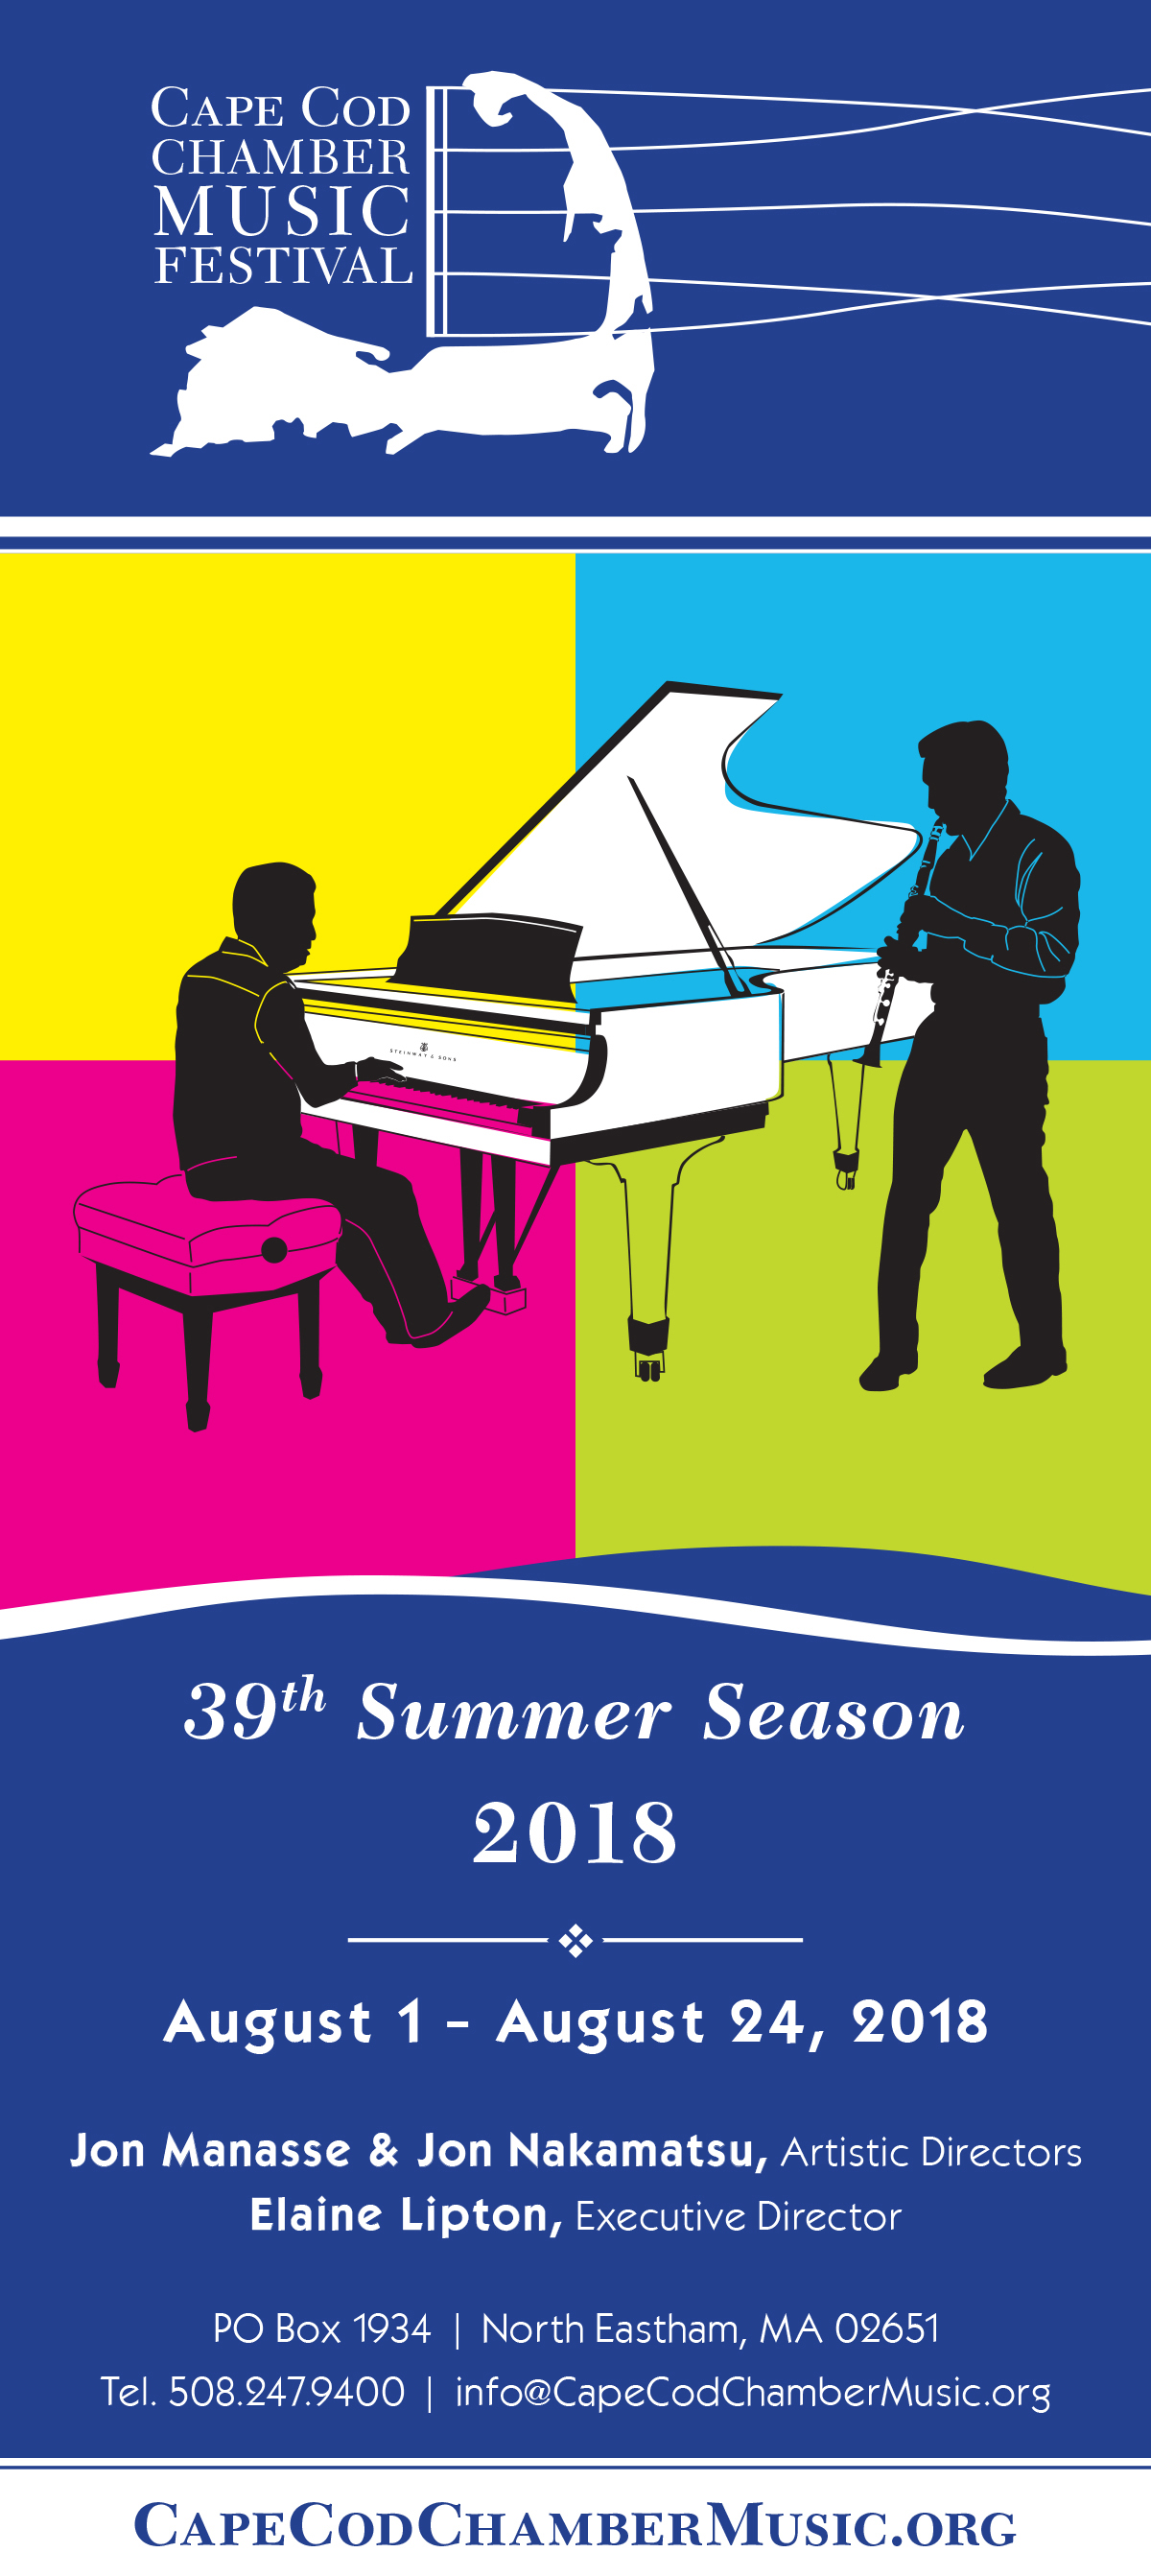 Two Beethoven Quartets Featured in Cape Cod Chamber Music